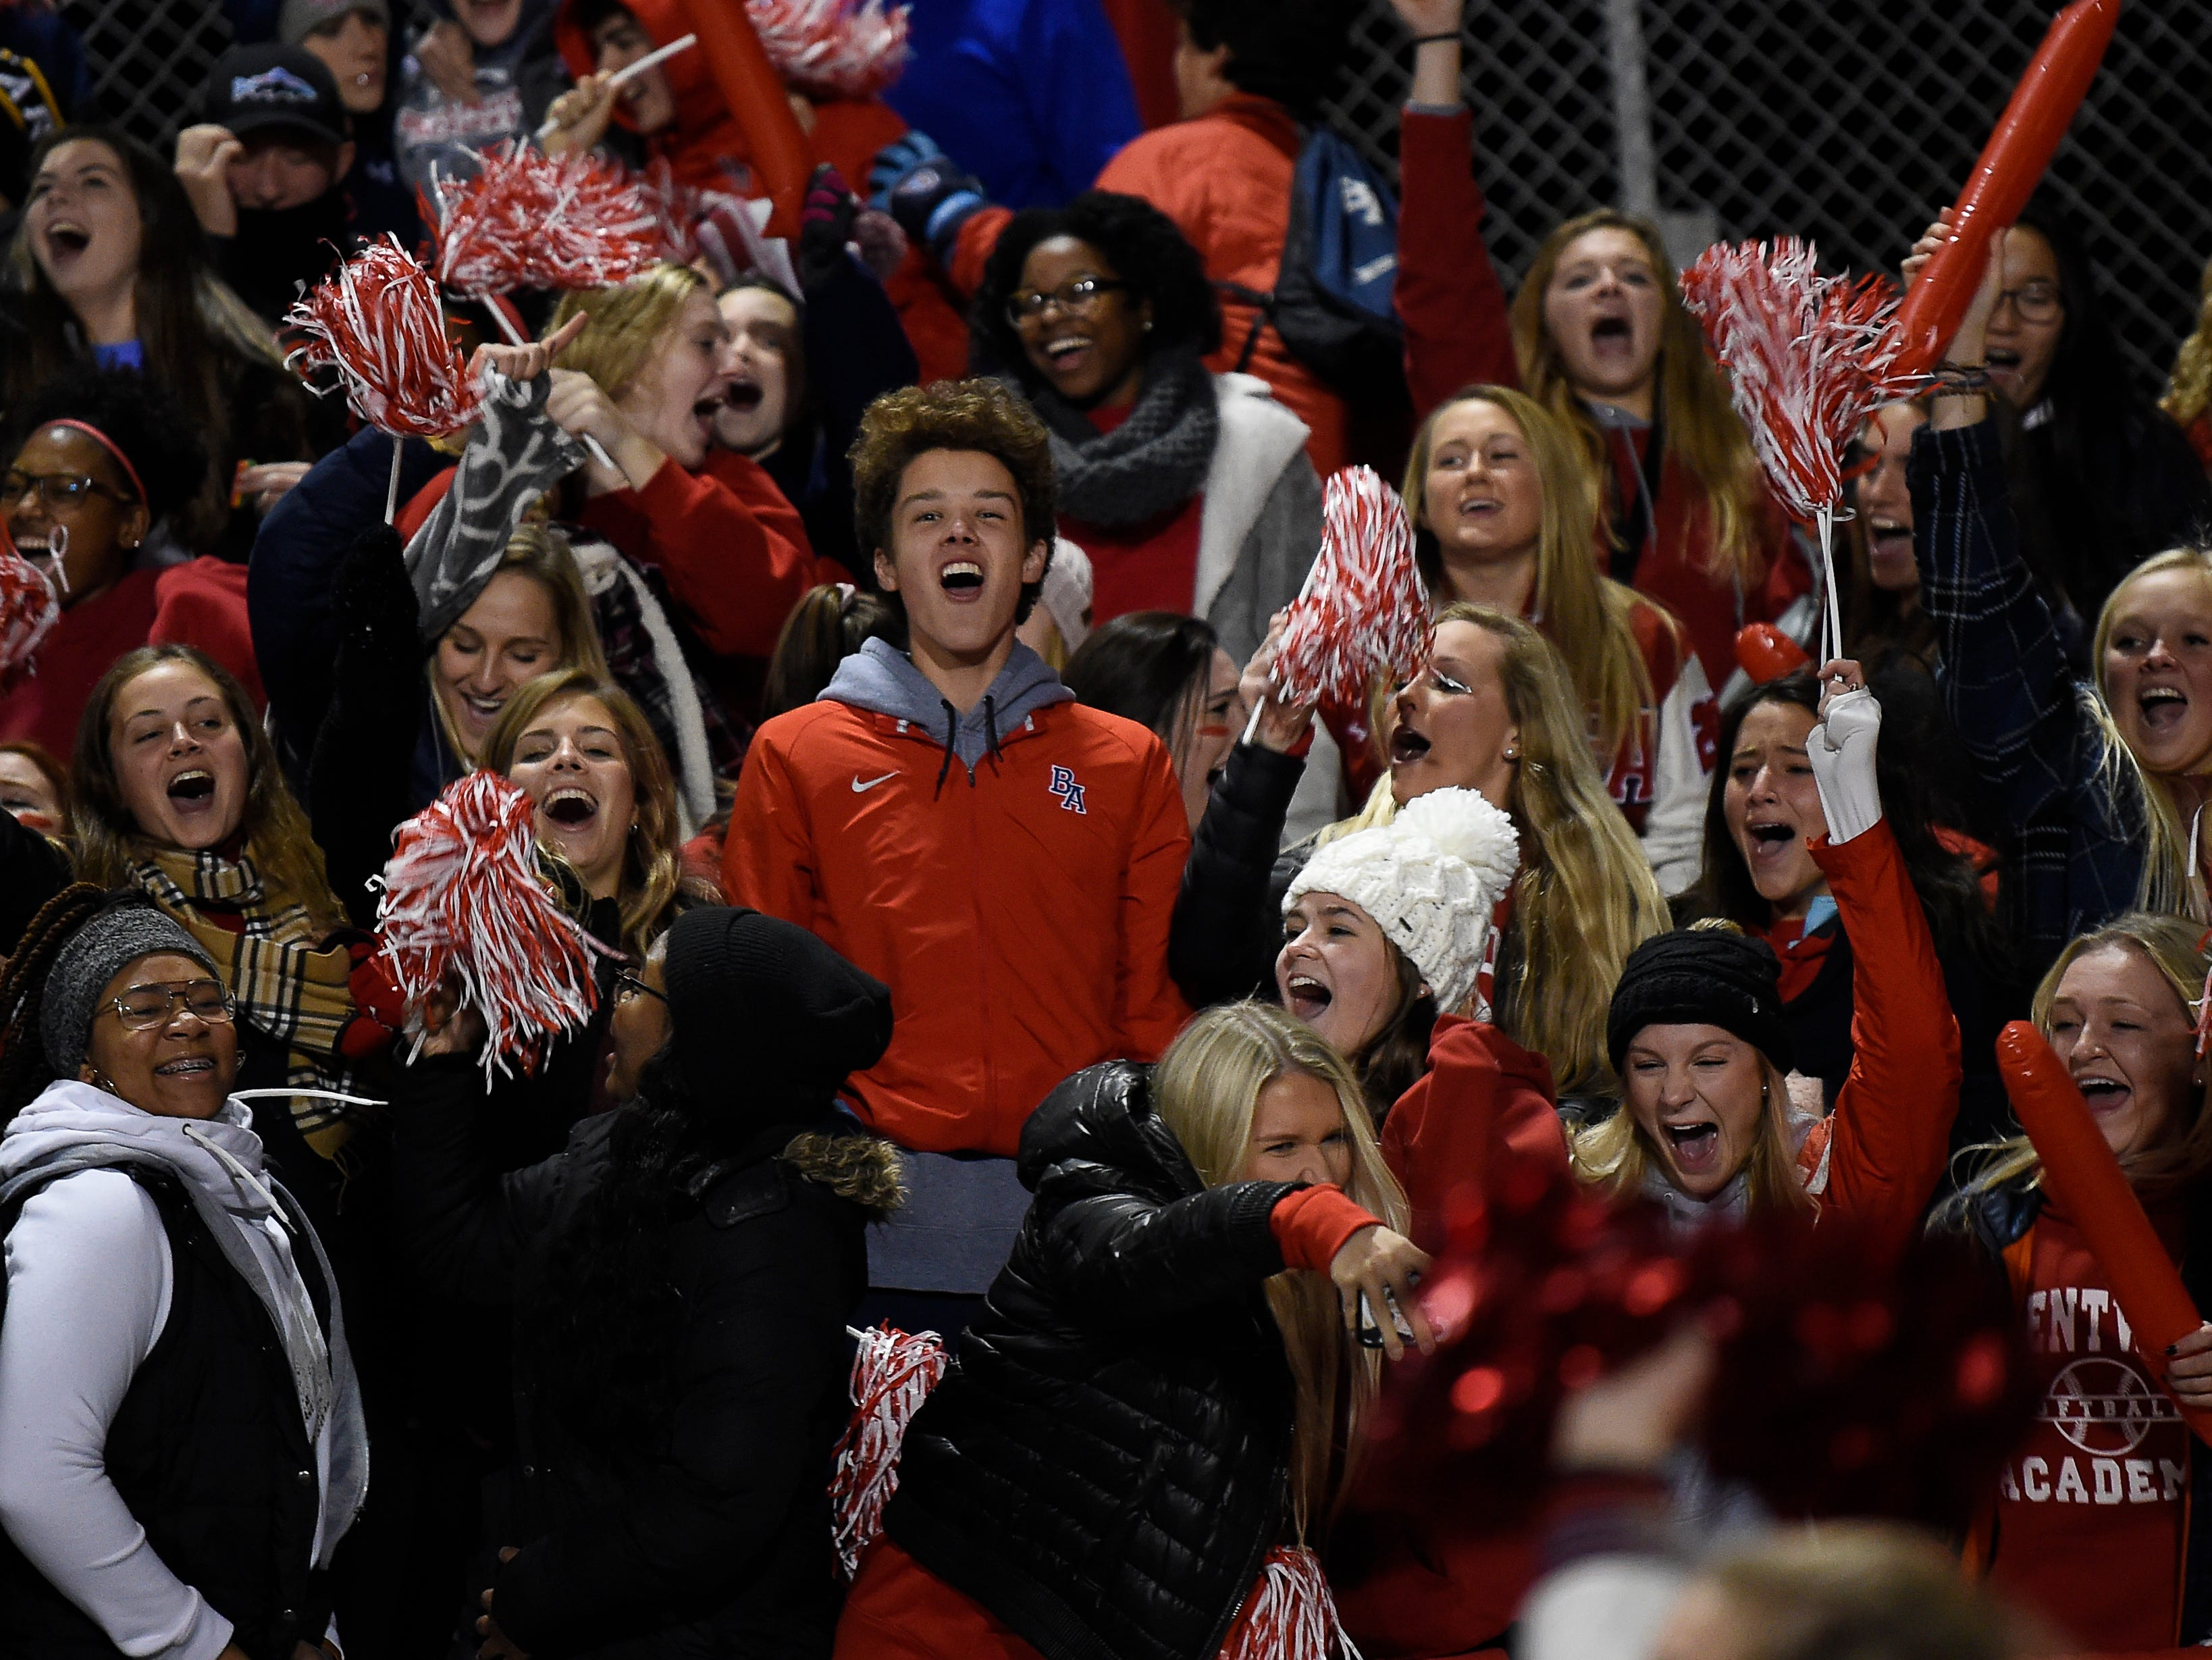 Brentwood Academy fans cheer for their team during their 2018 Division II Class AAA State Football Playoff game against MBA at Montgomery Bell Academy Friday, Nov. 16, 2018, in Nashville, Tenn.